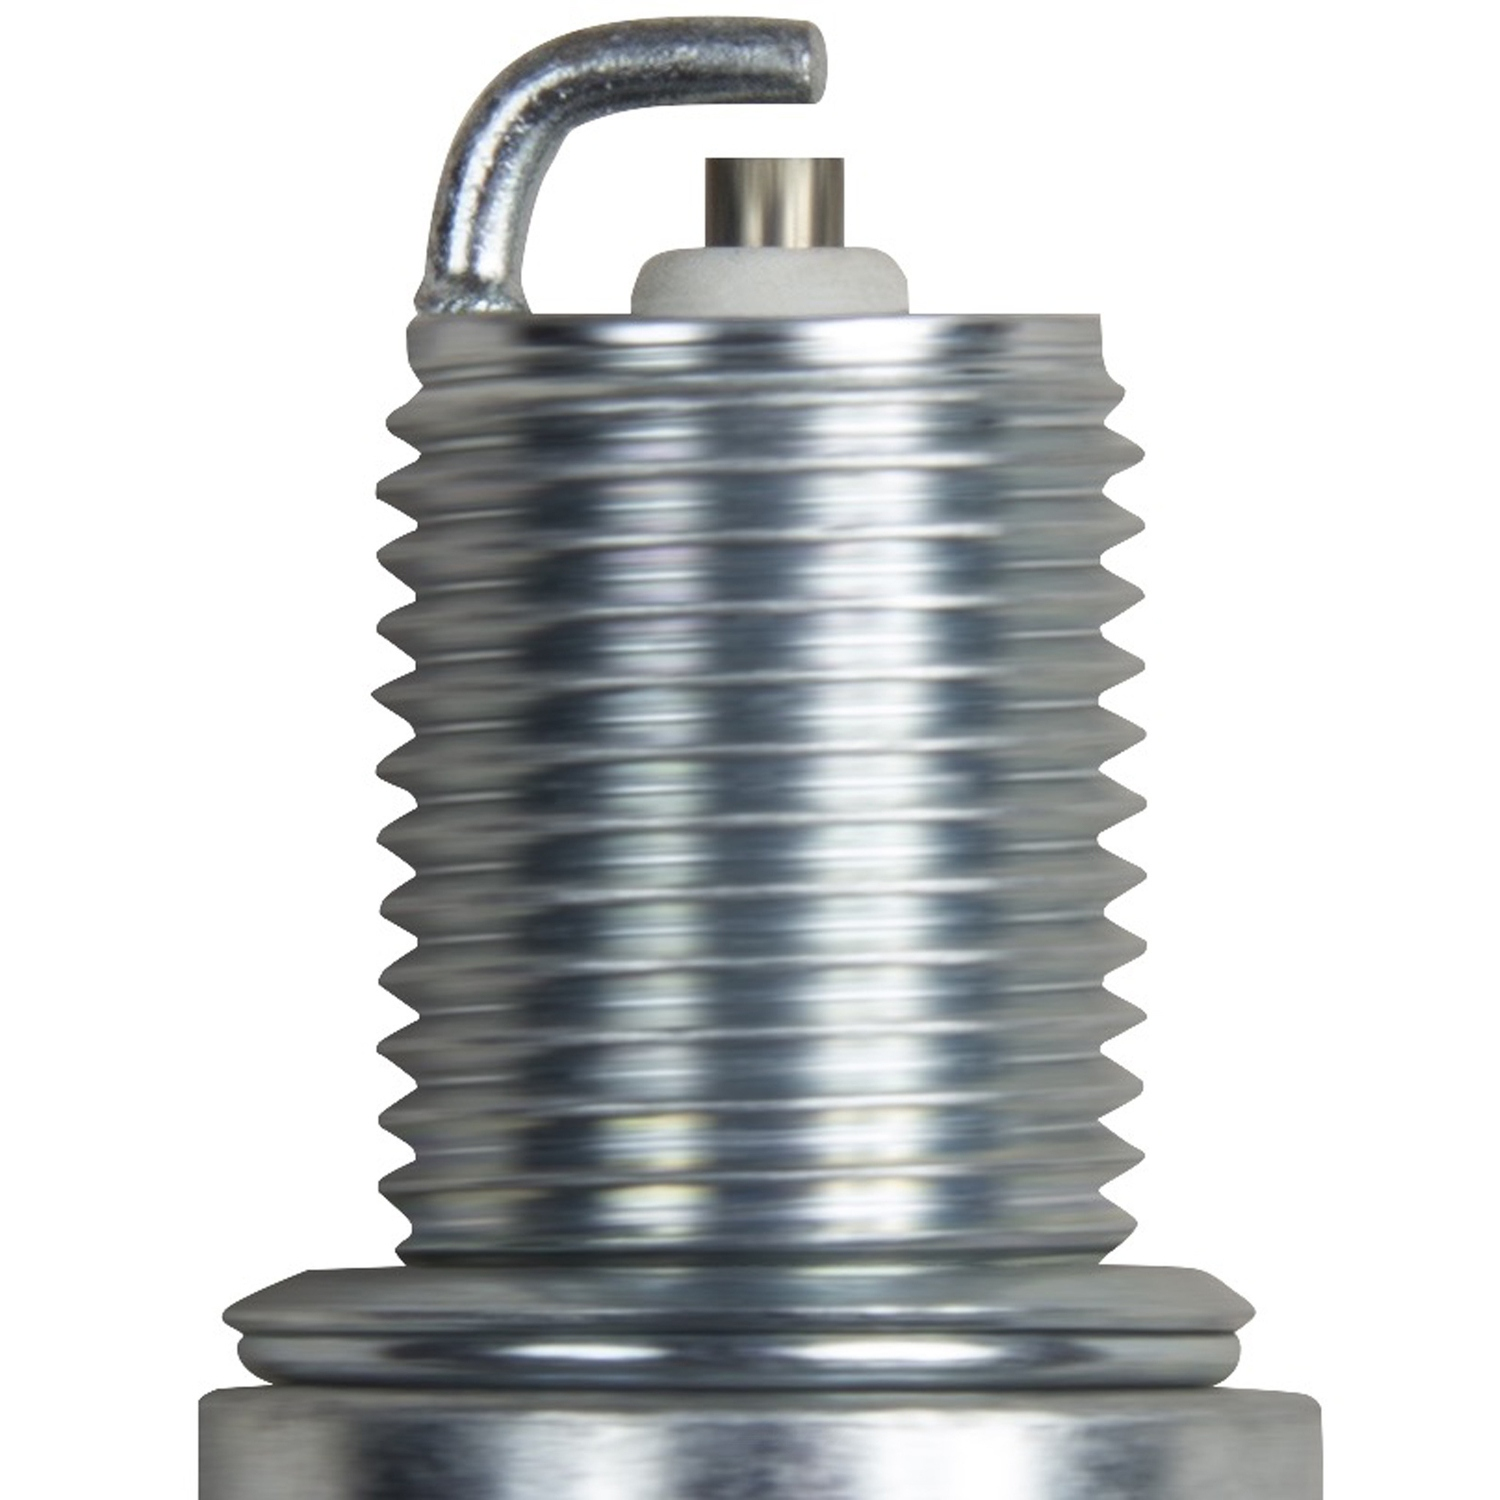 CHAMPION SPARK PLUGS - Copper Plus Spark Plug - CHA 415